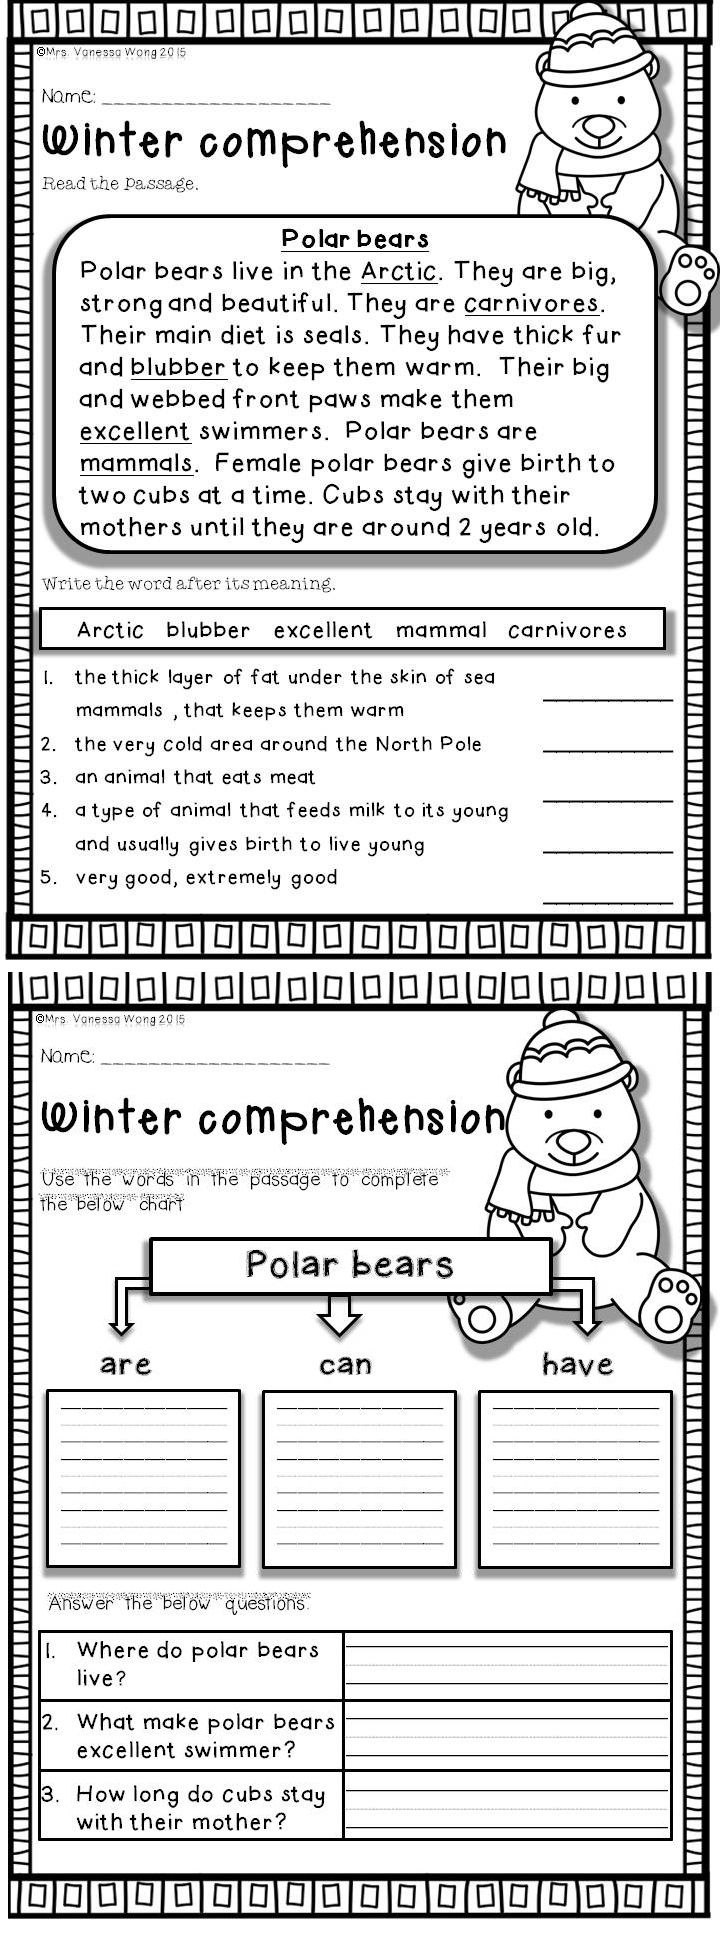 Pin By Vanesa Wong On Time To Teach First Grade Teaching First Grade 2nd Grade Reading Guided reading activities for winter